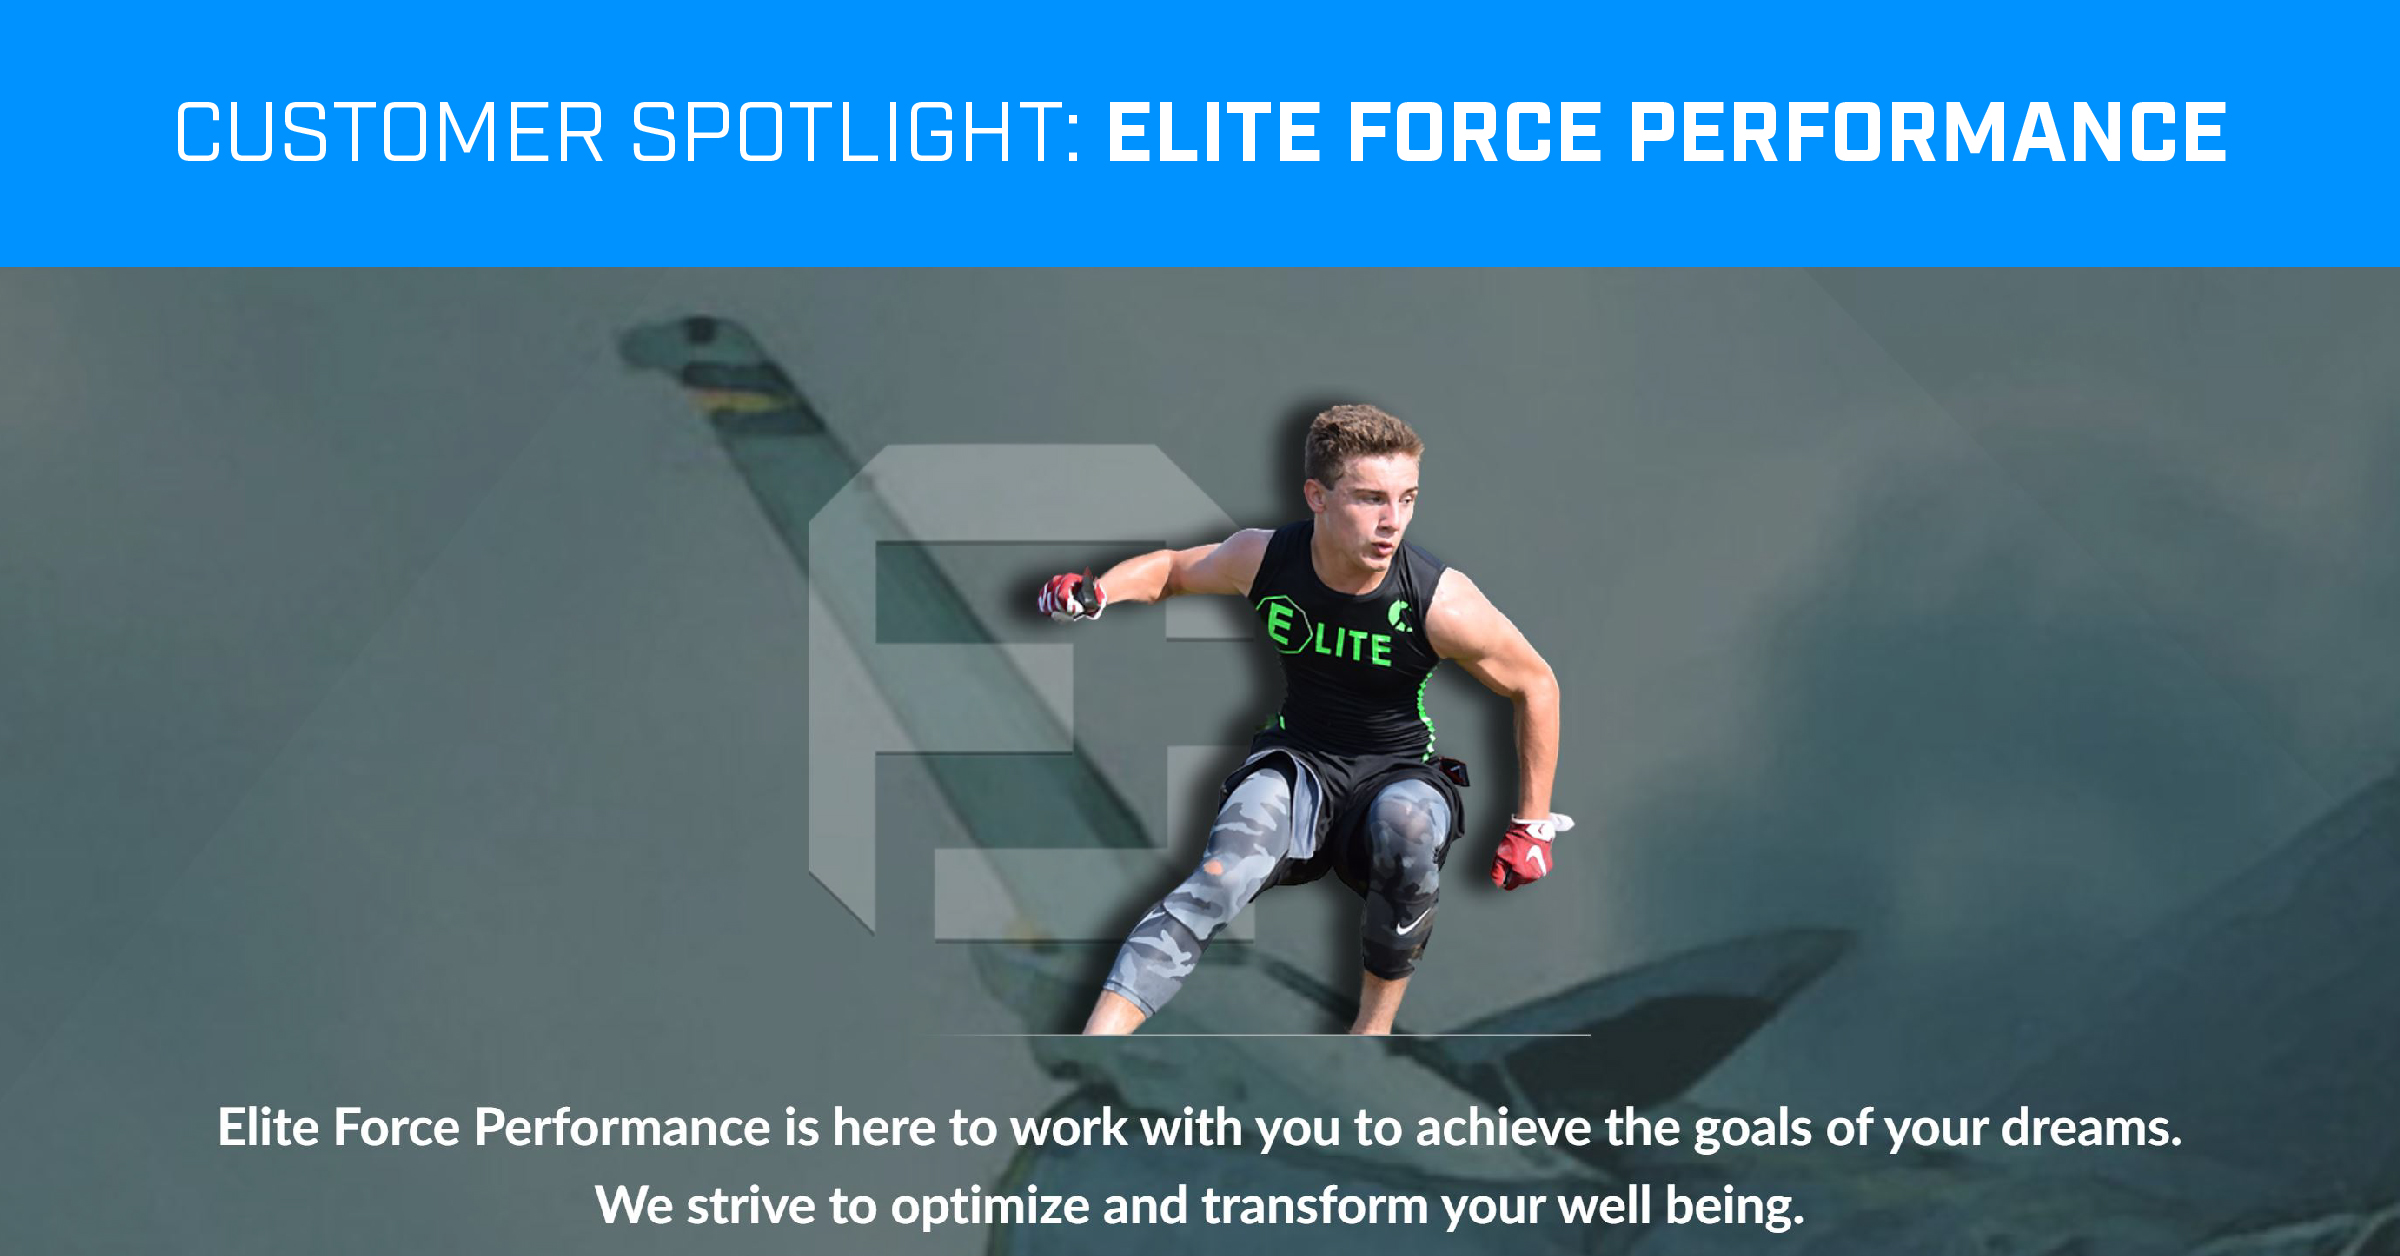 Customer Spotlight: Elite Force Performance